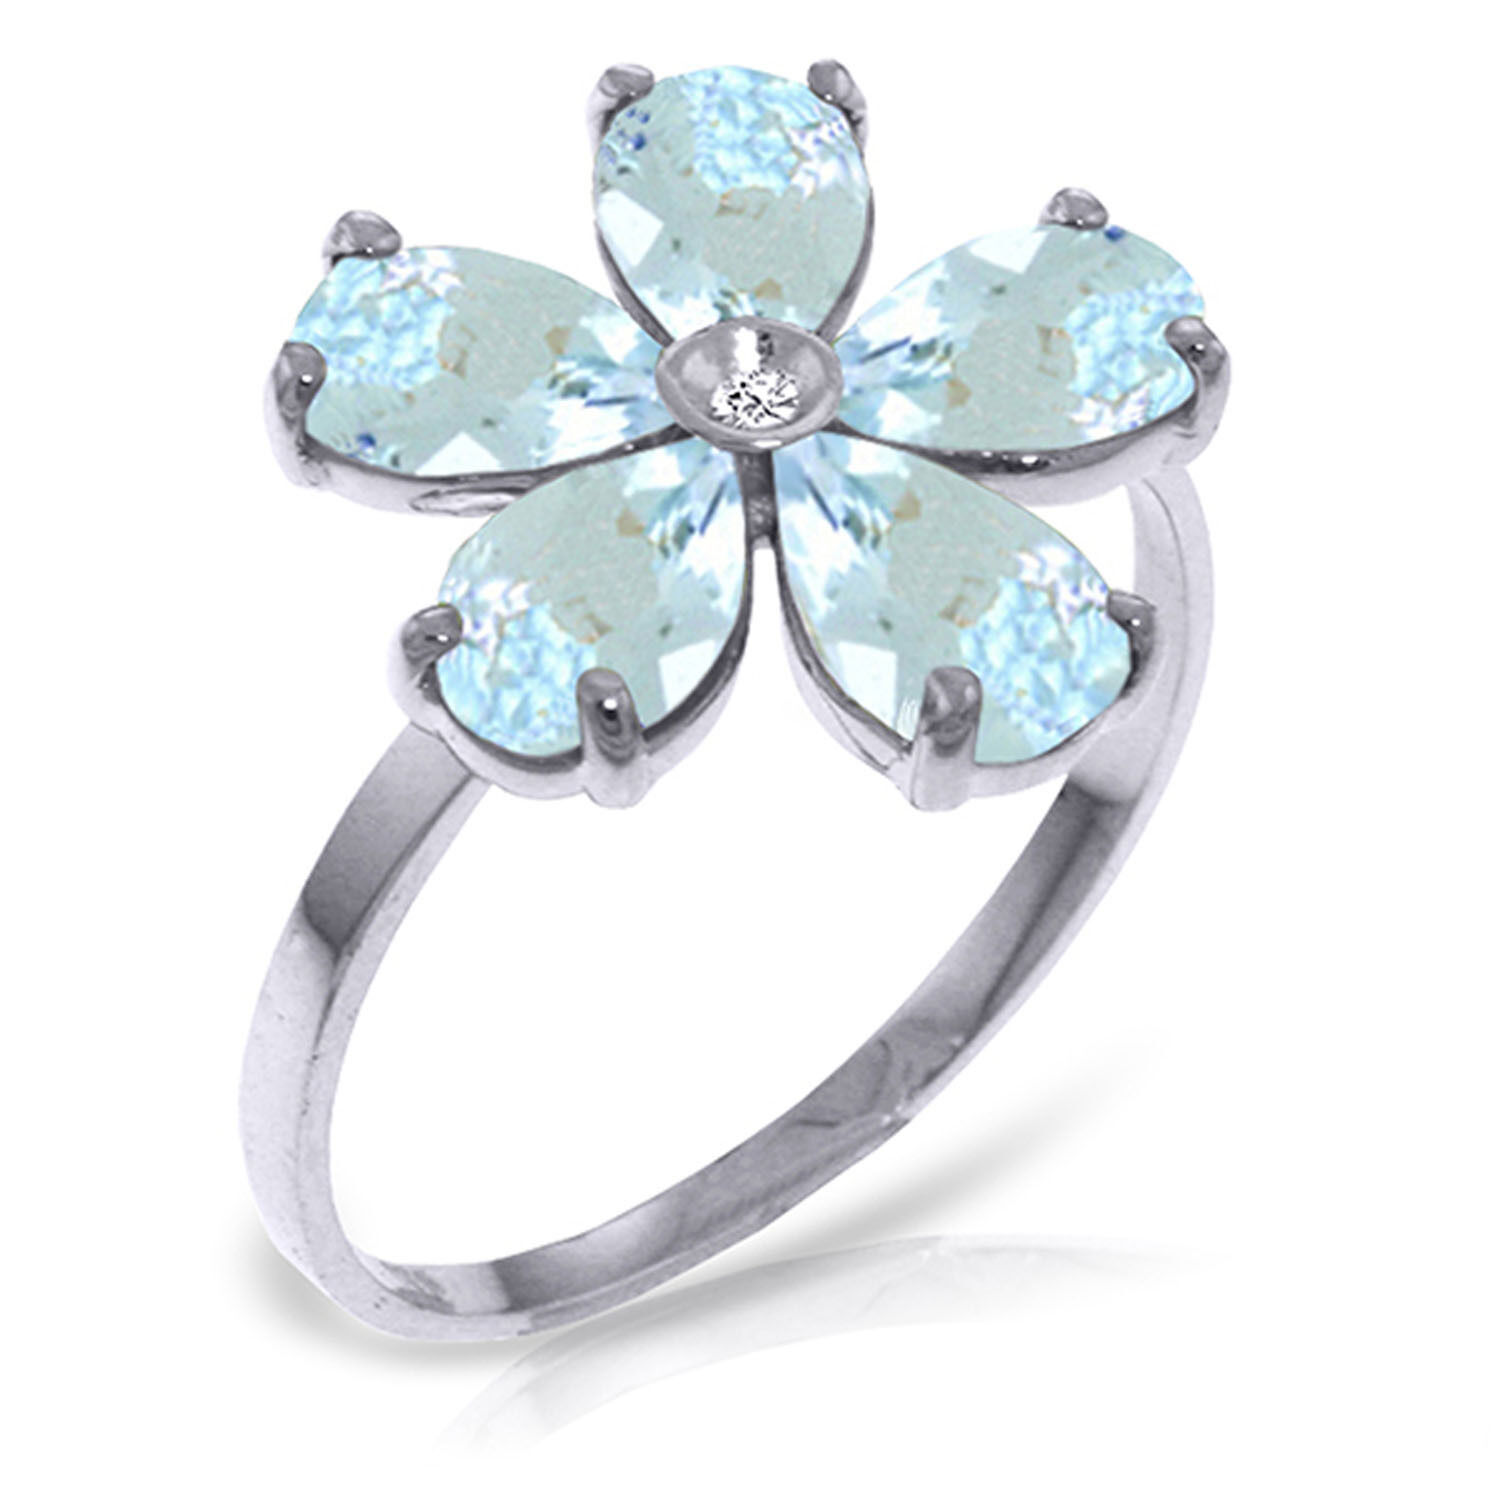 2.22 CT 14K Solid White gold Aquamarine Natural Diamond Ring